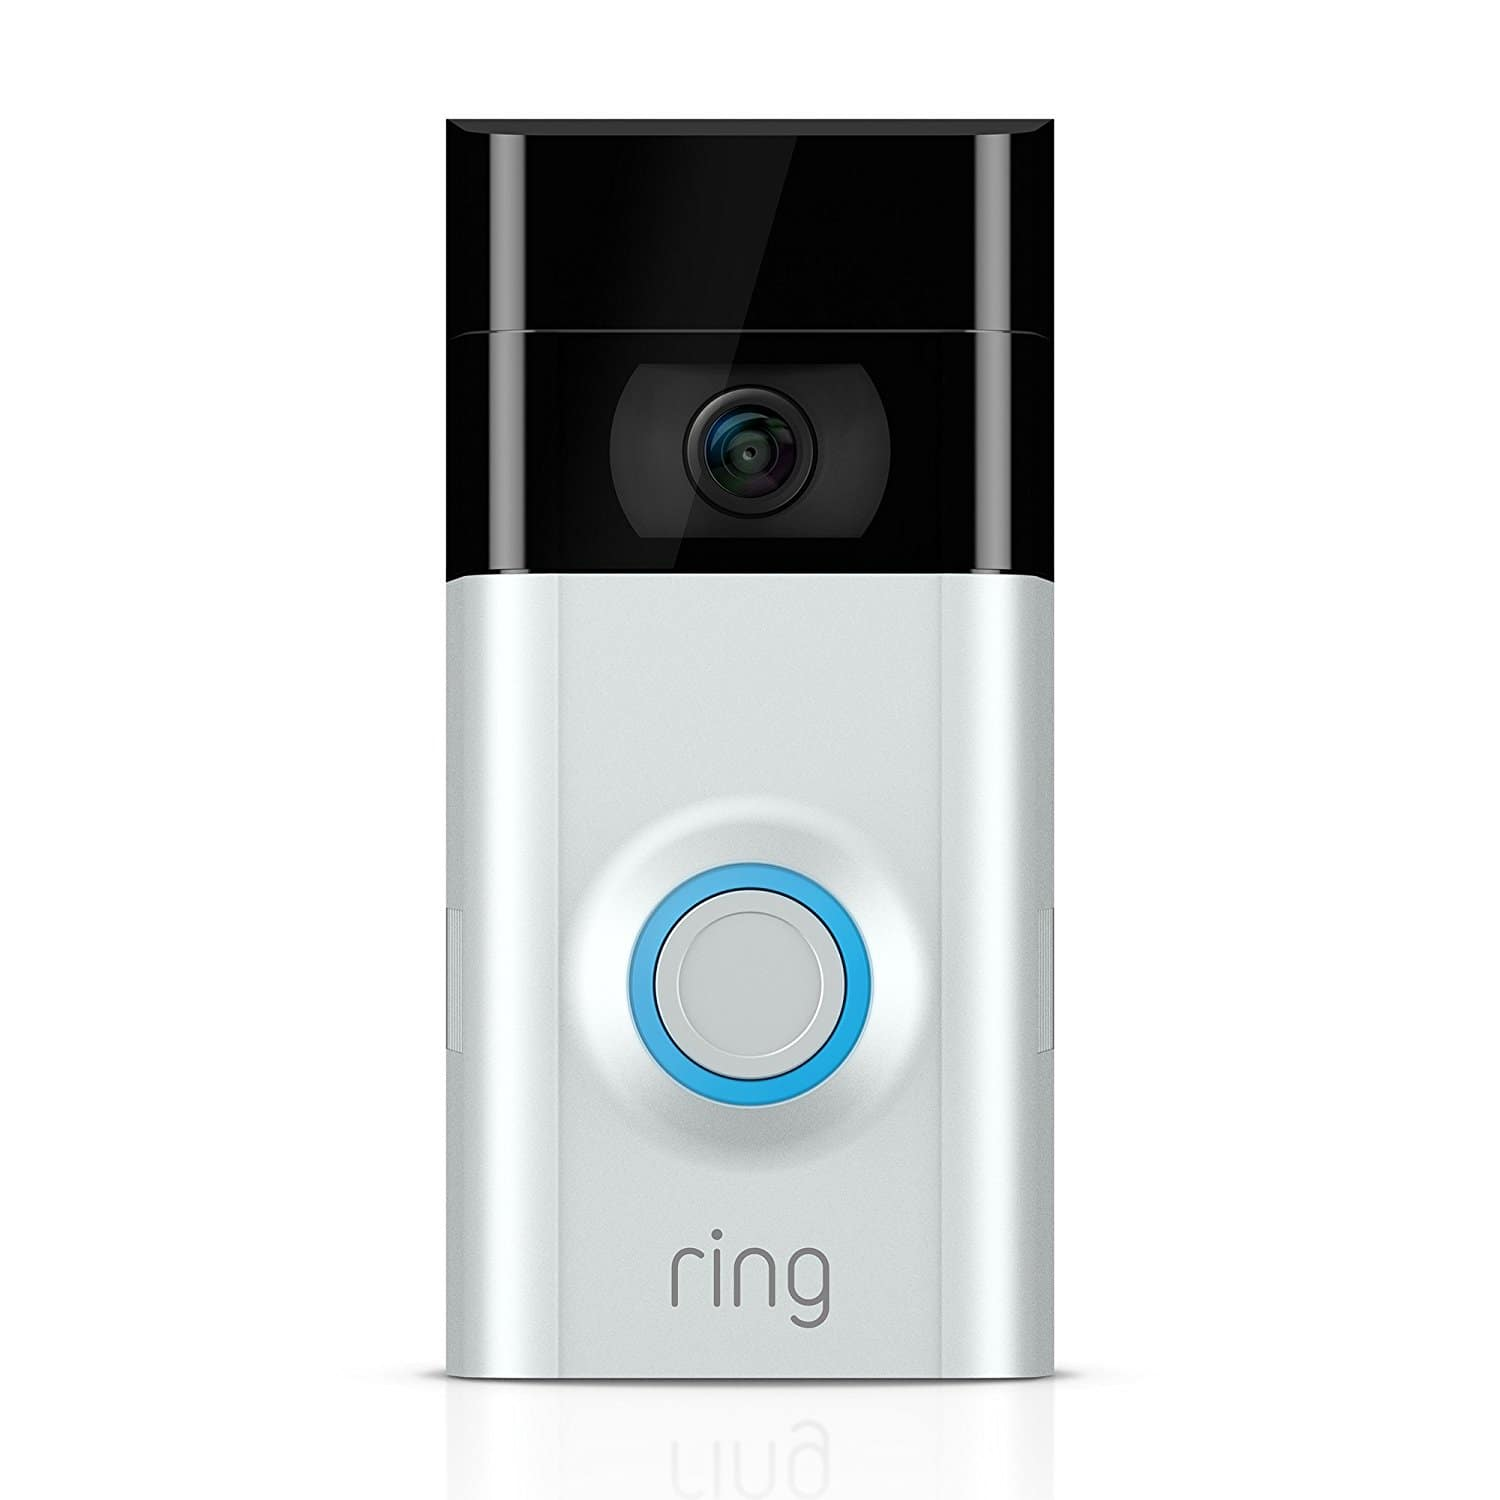 Ring Video Doorbell 2 System $145, Ring Video Doorbell Pro $183 + Free Shipping